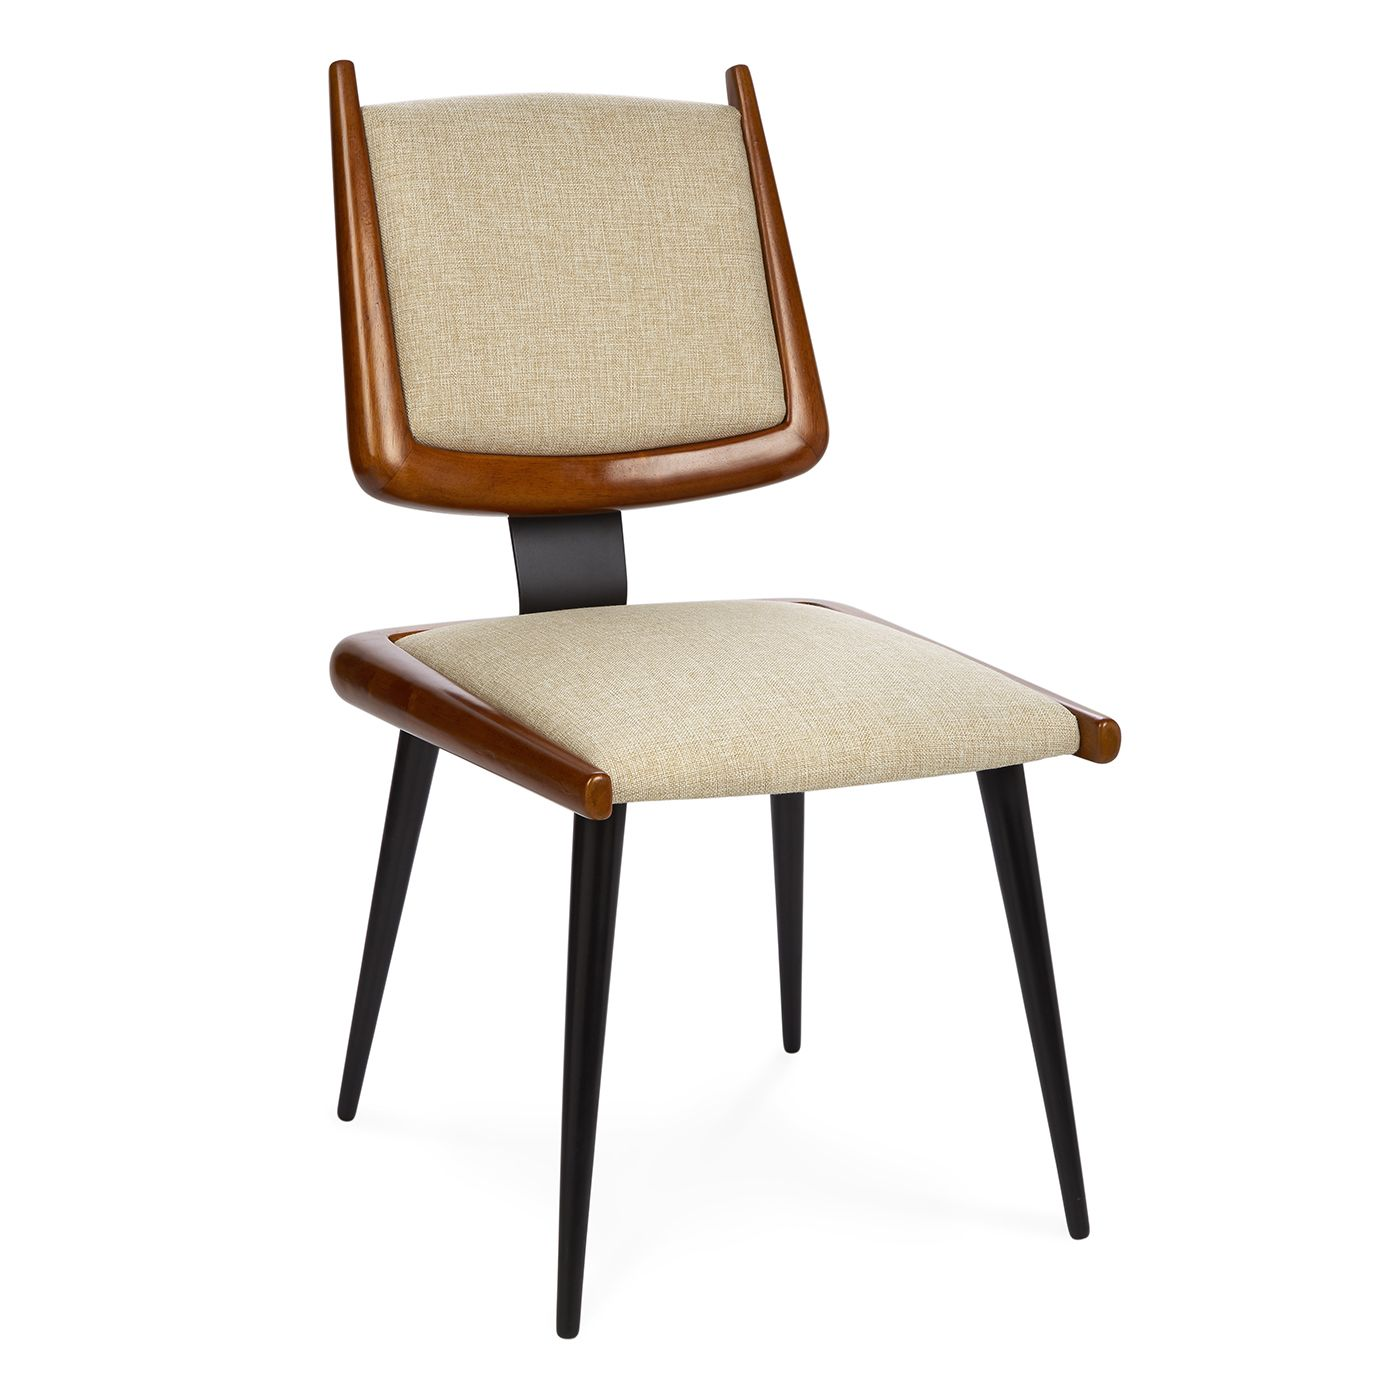 Antibes Dining Chair Modern Furniture Jonathan Adler Decoration Mobilier Chaise